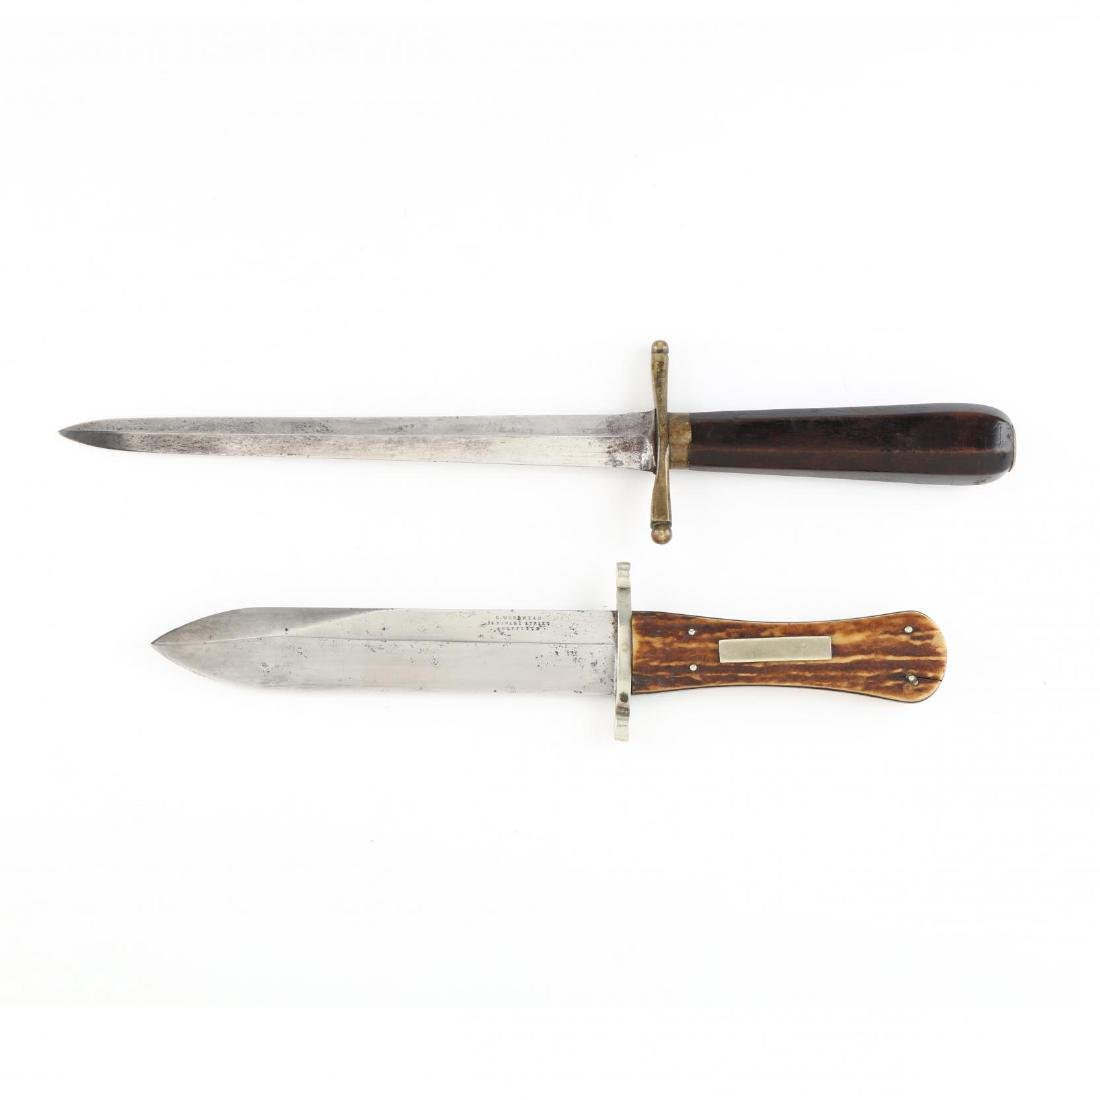 Two Mid-19th Century Fighting Knives